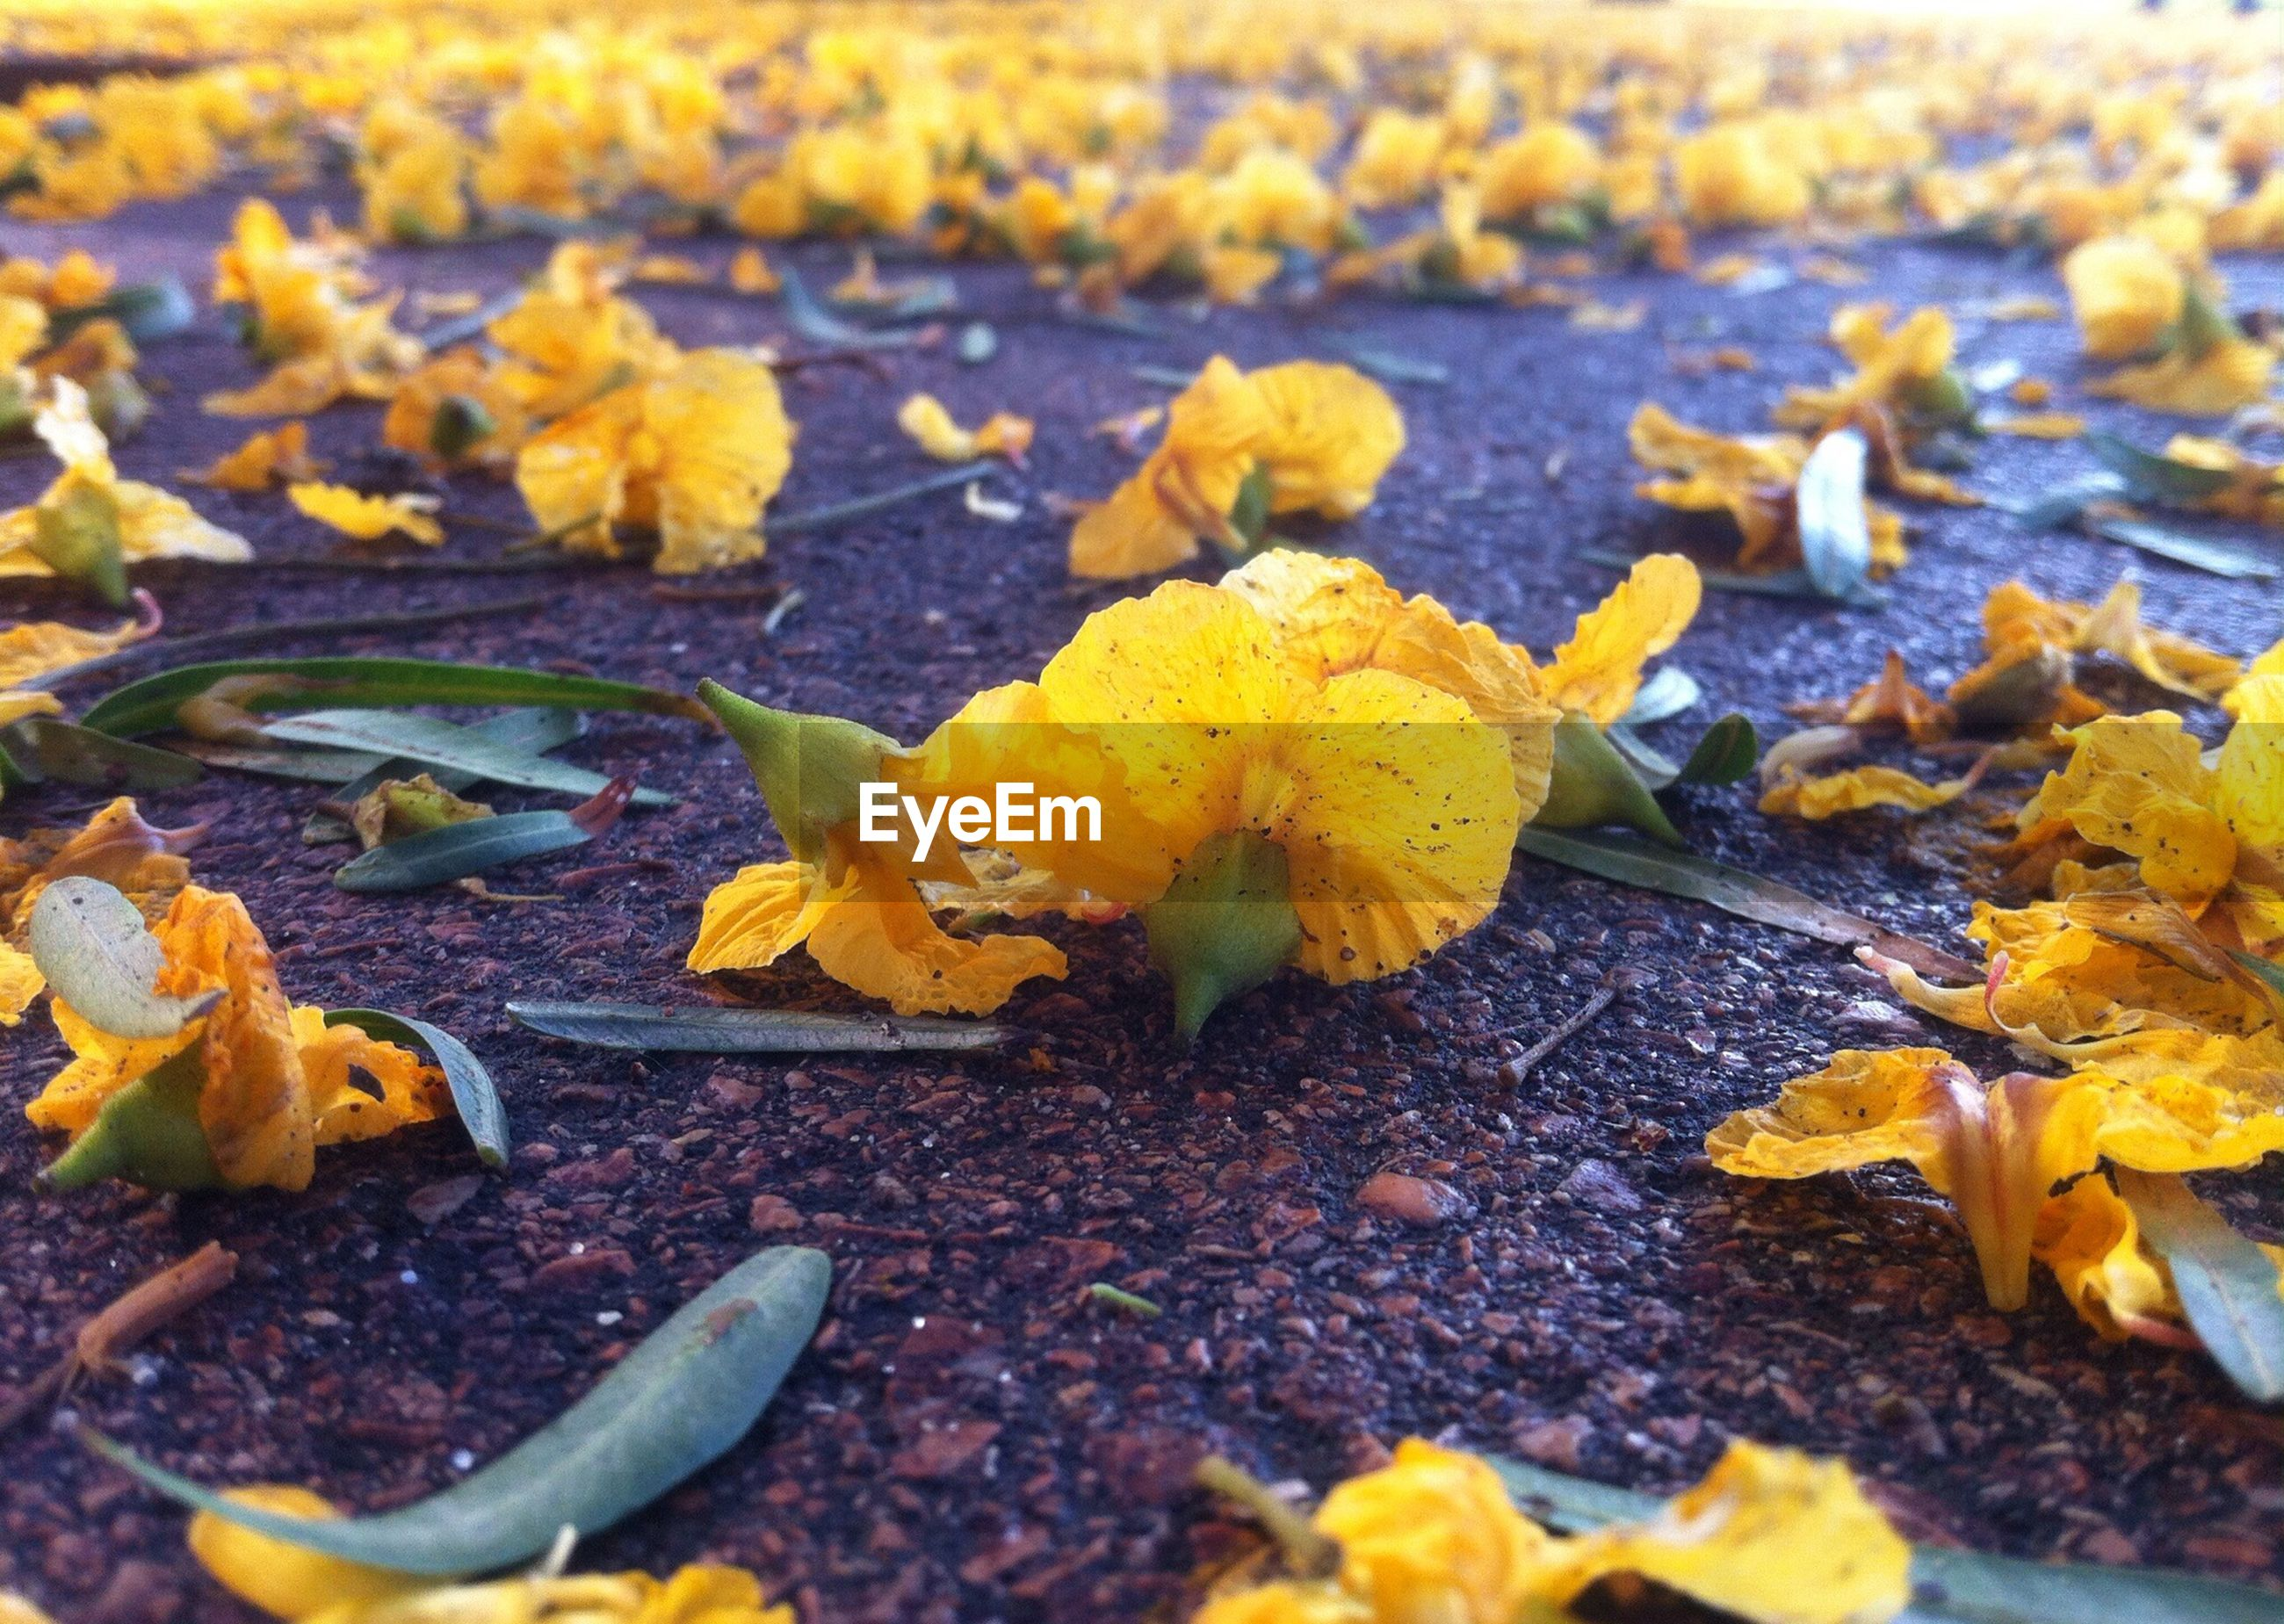 Close-up of yellow flowers fallen on street